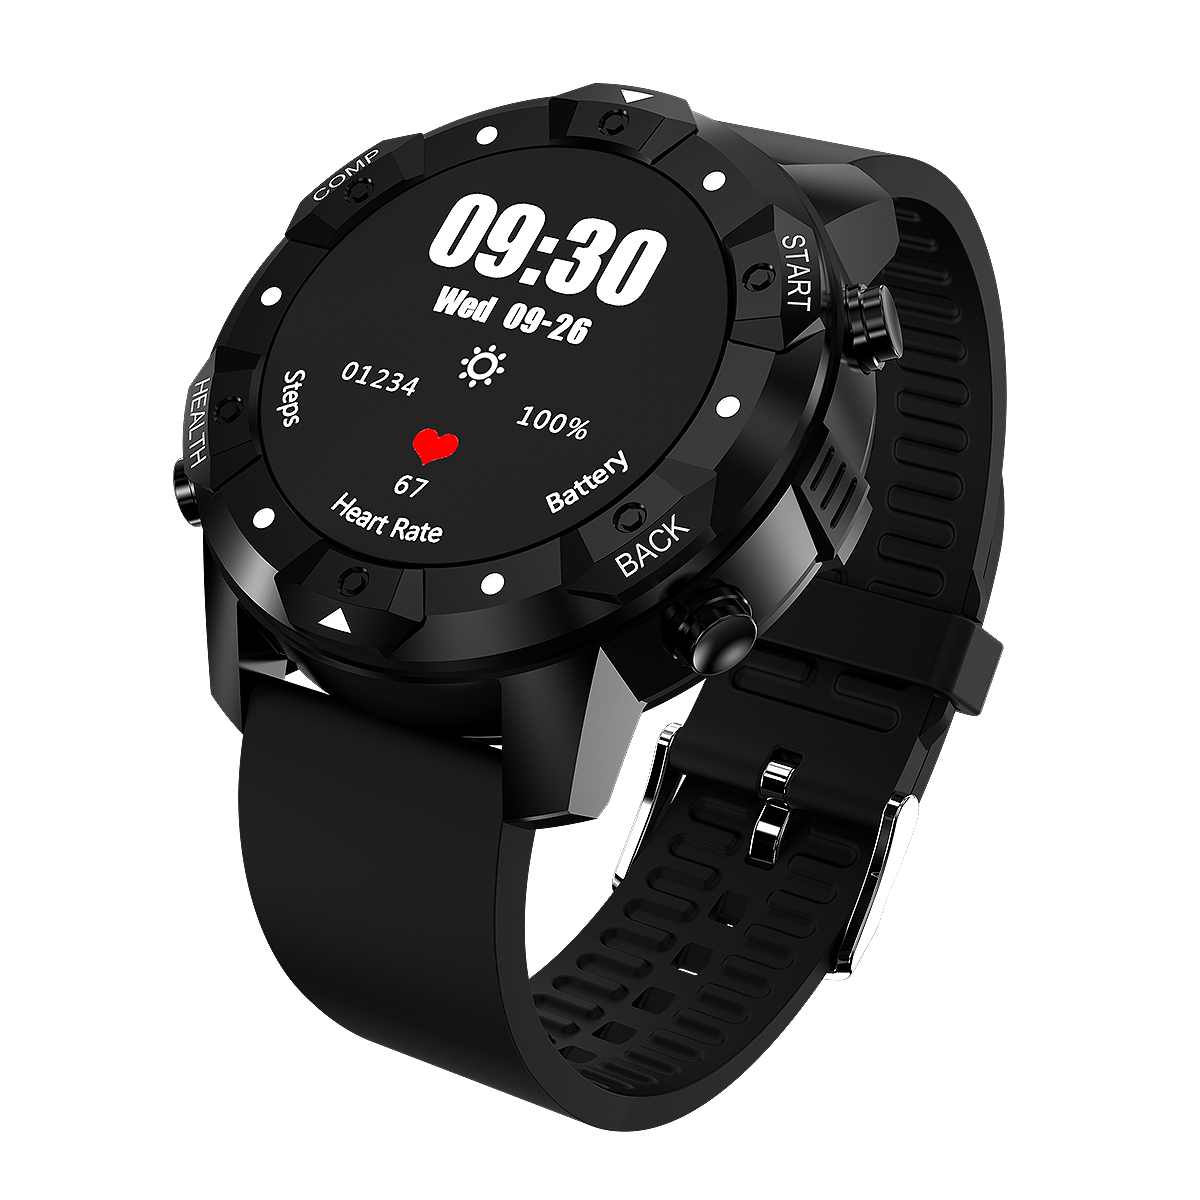 Itek Sport 3G SIM GPS Wifi Smart Watch 1GB+16GB IP67 Waterproof Smartwatch Support Heart Rate Monitor Passometer For Android iOS w308 android 3g smartwatch heart rate tracker smart watch support sim wifi gps g sensor smartwatches for android ios smartphone